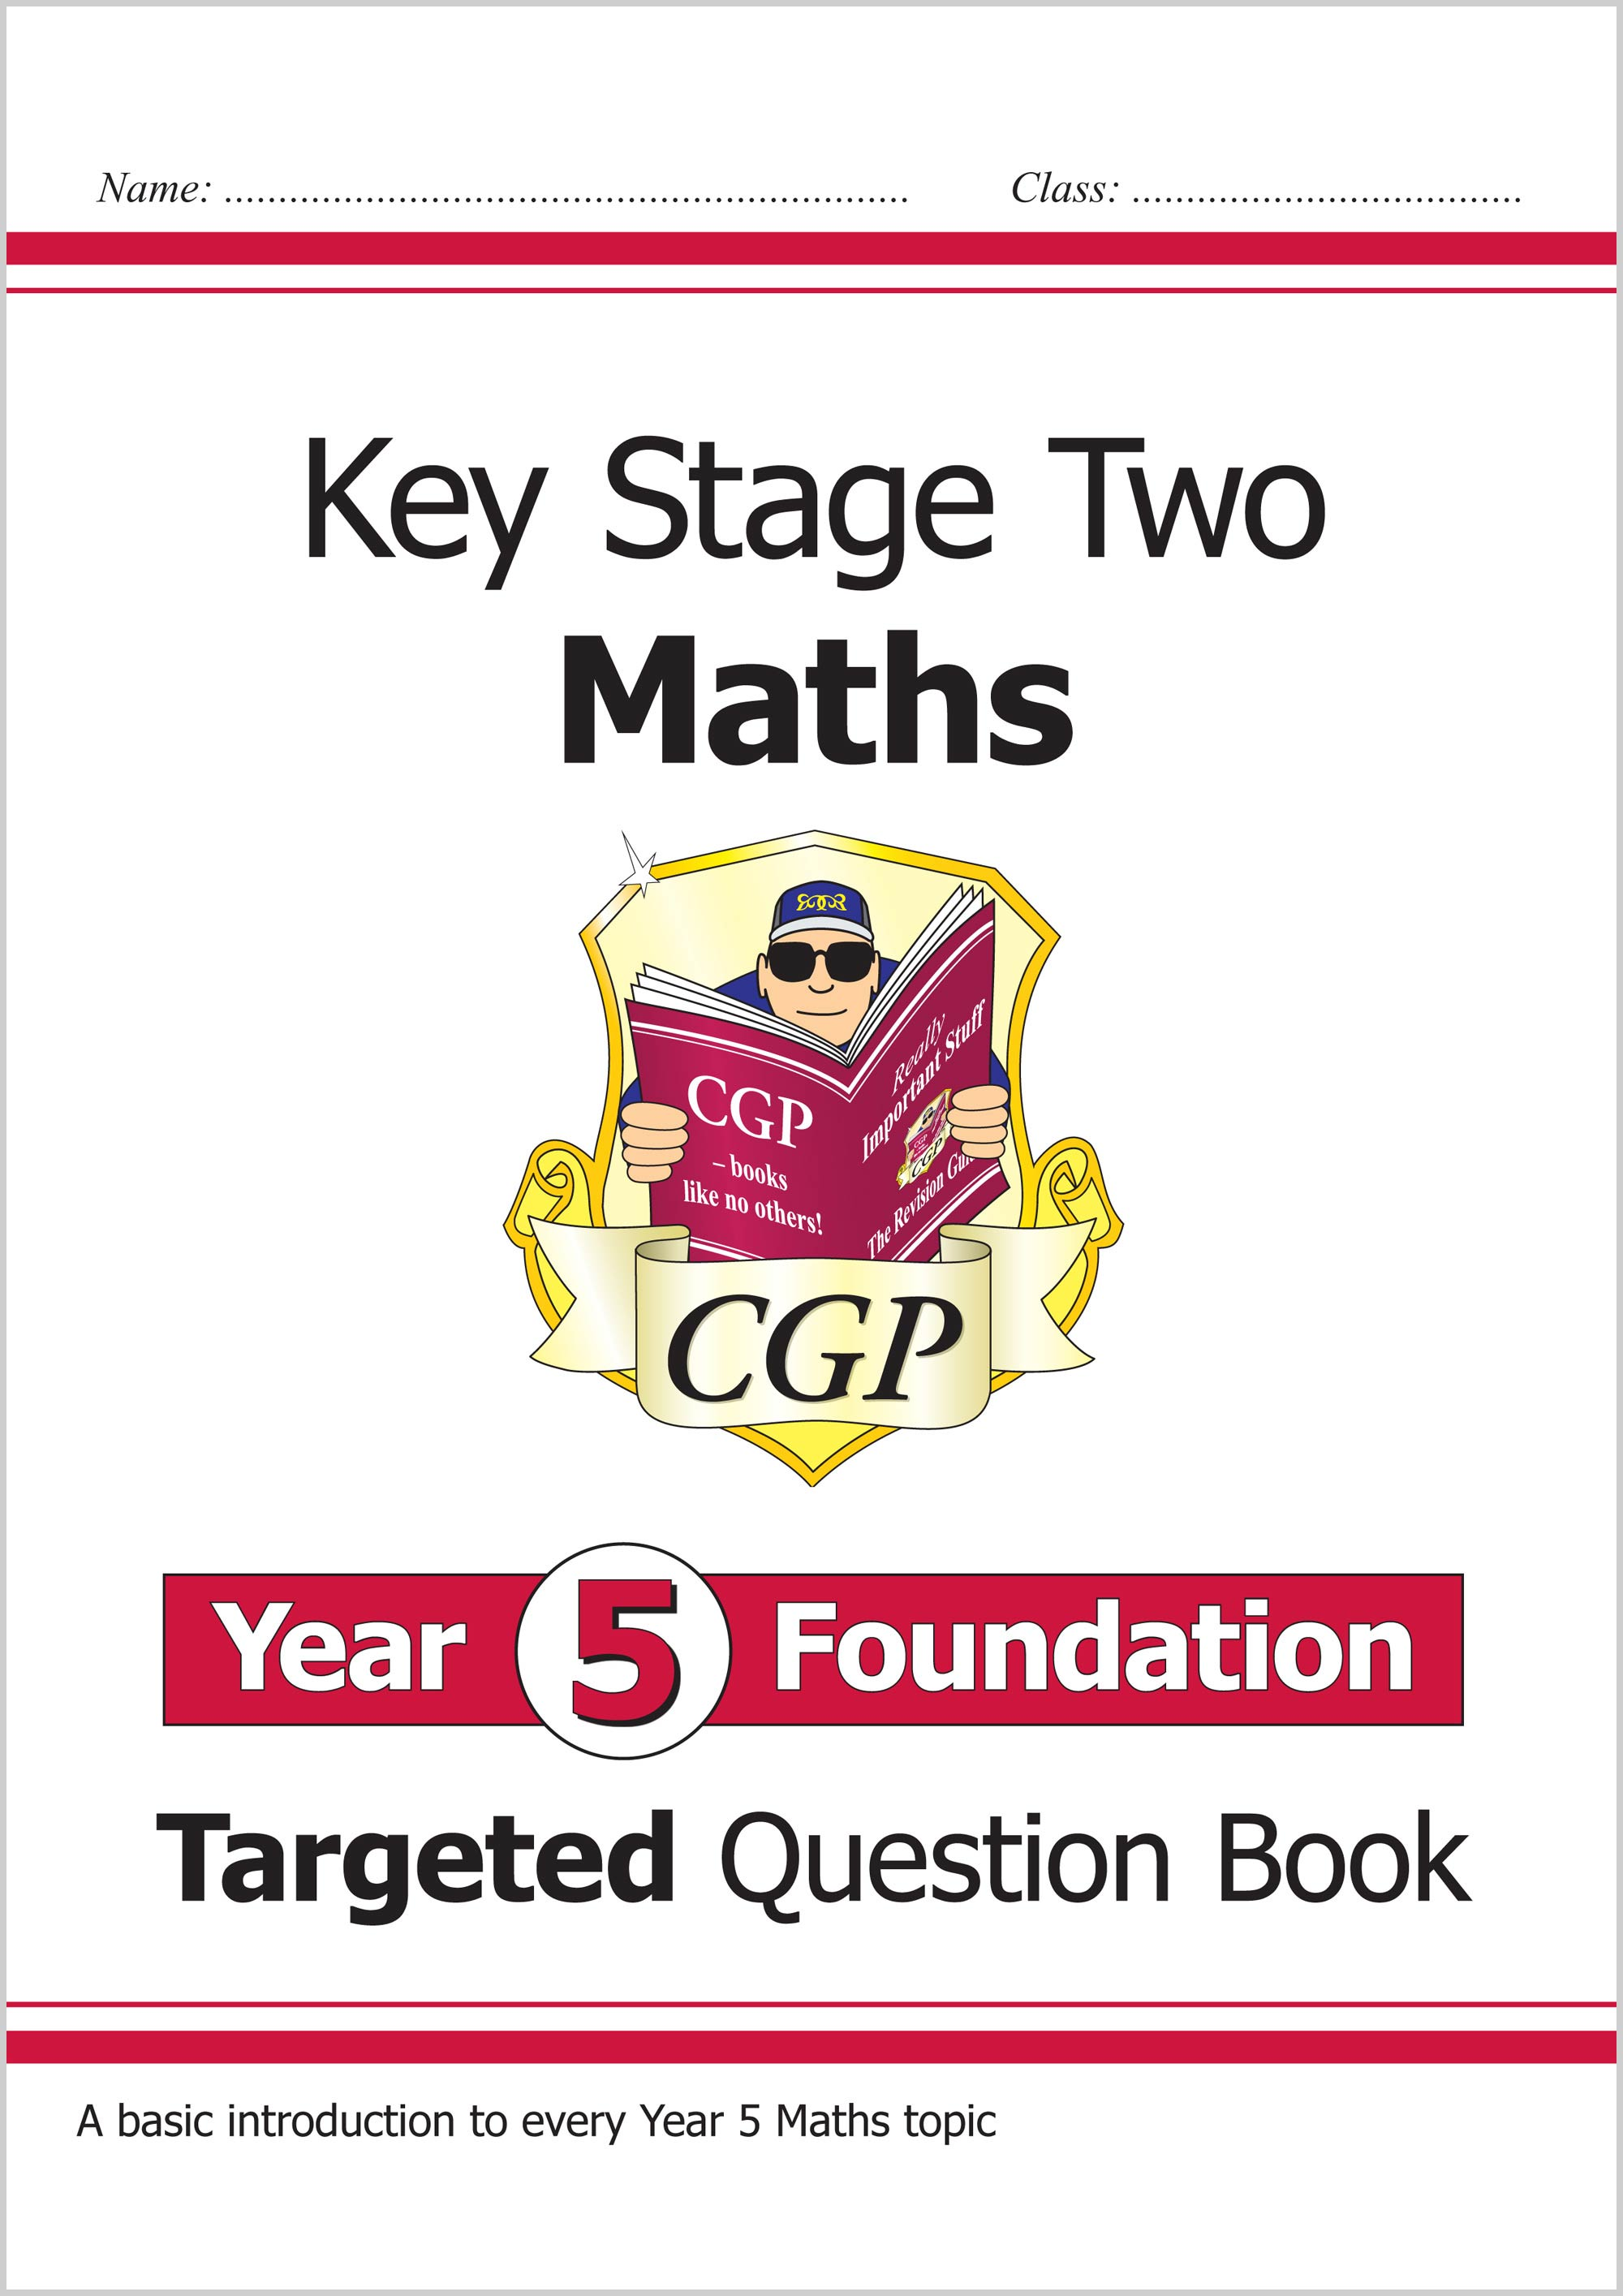 M5FQ21 - KS2 Maths Targeted Question Book: Year 5 Foundation